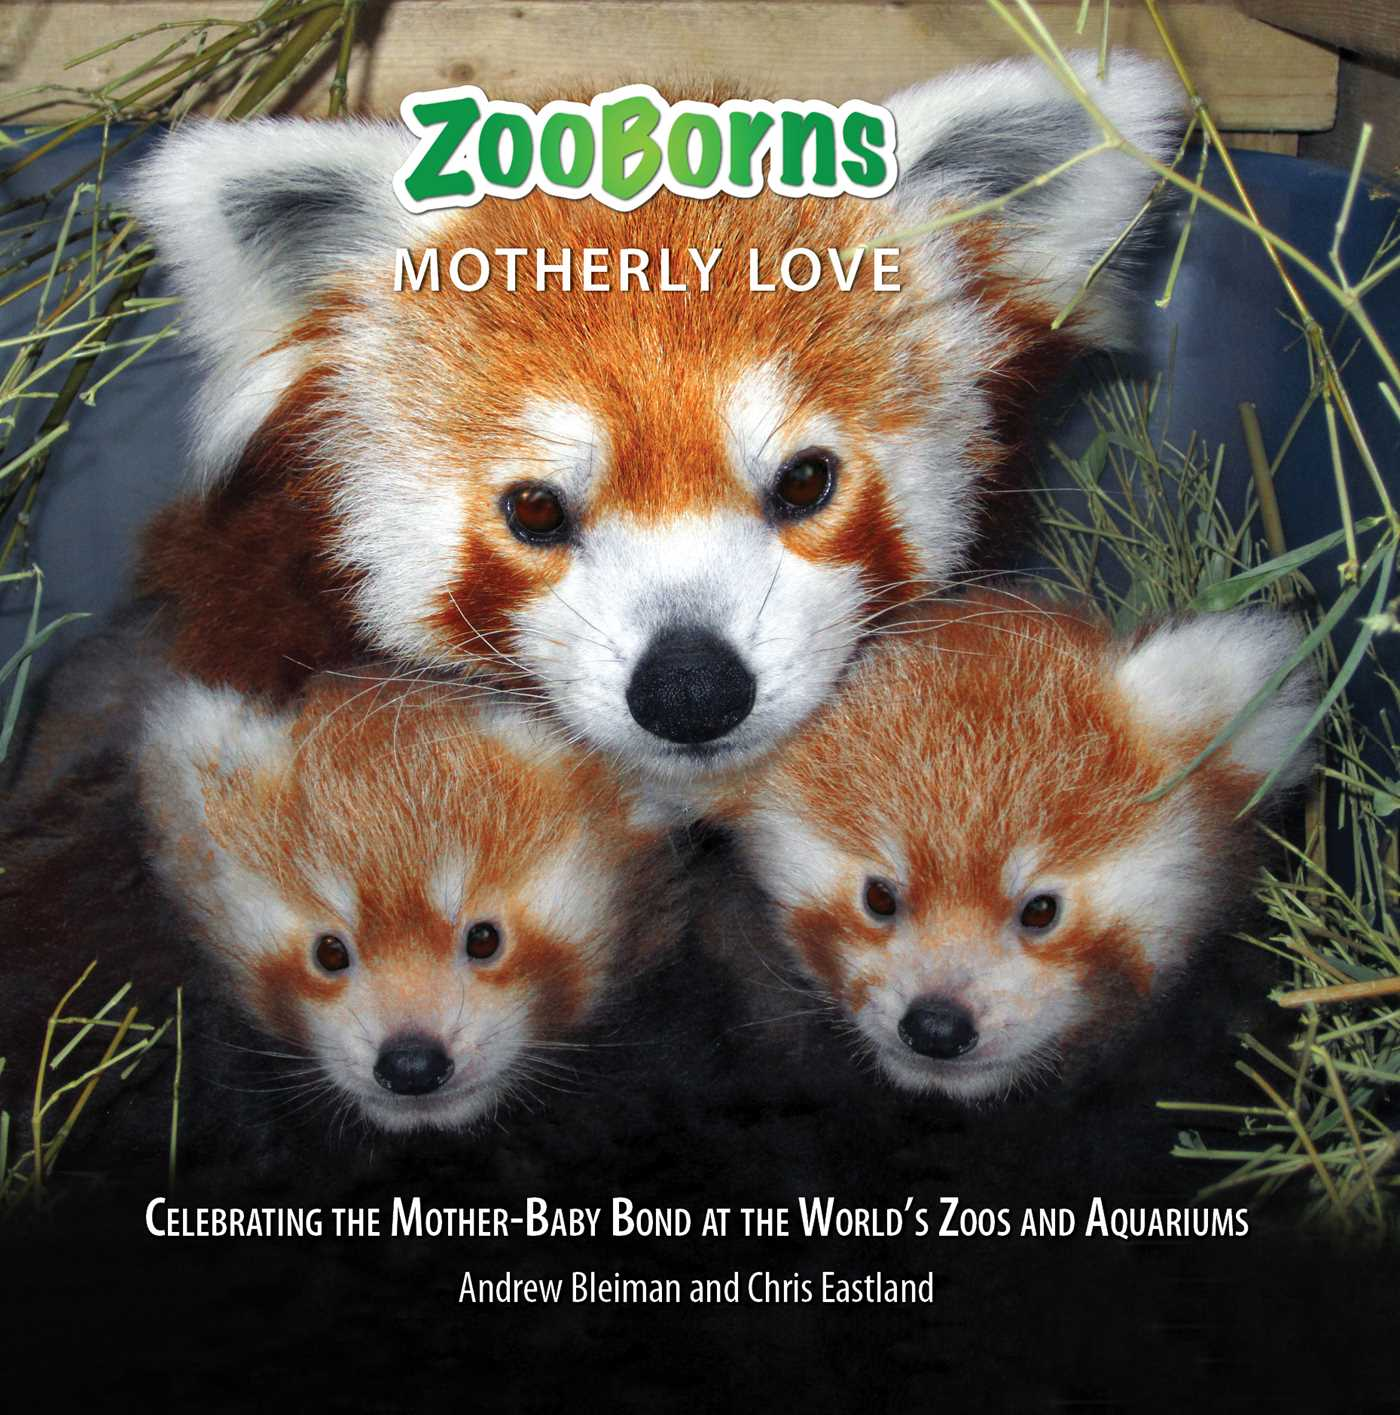 Zooborns motherly love 9781476791968 hr